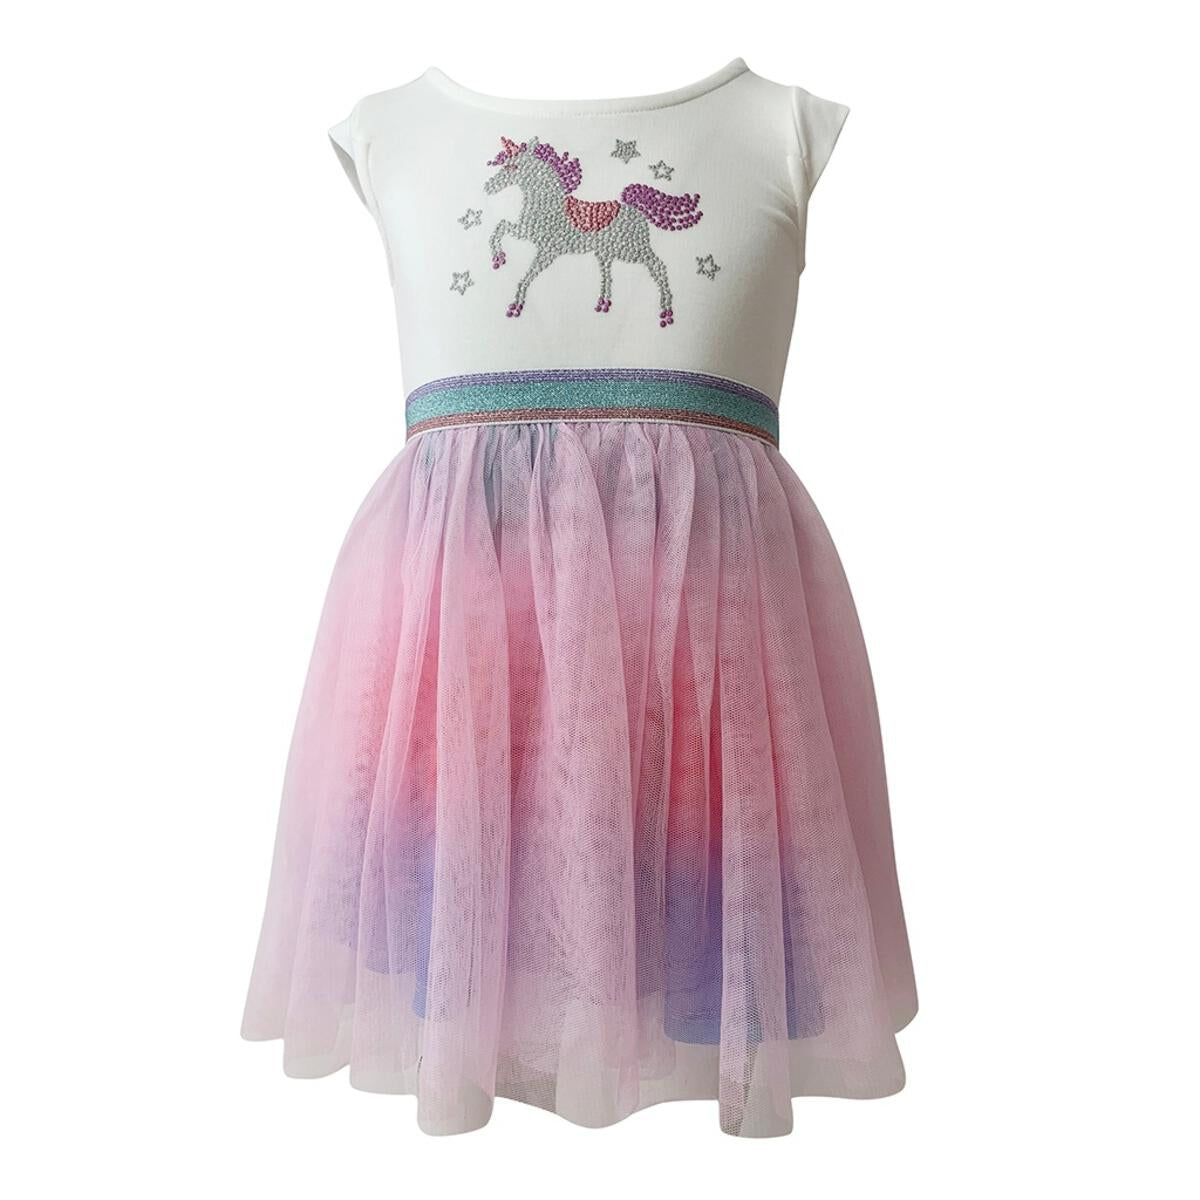 Crystal Unicorn Tutu Dress